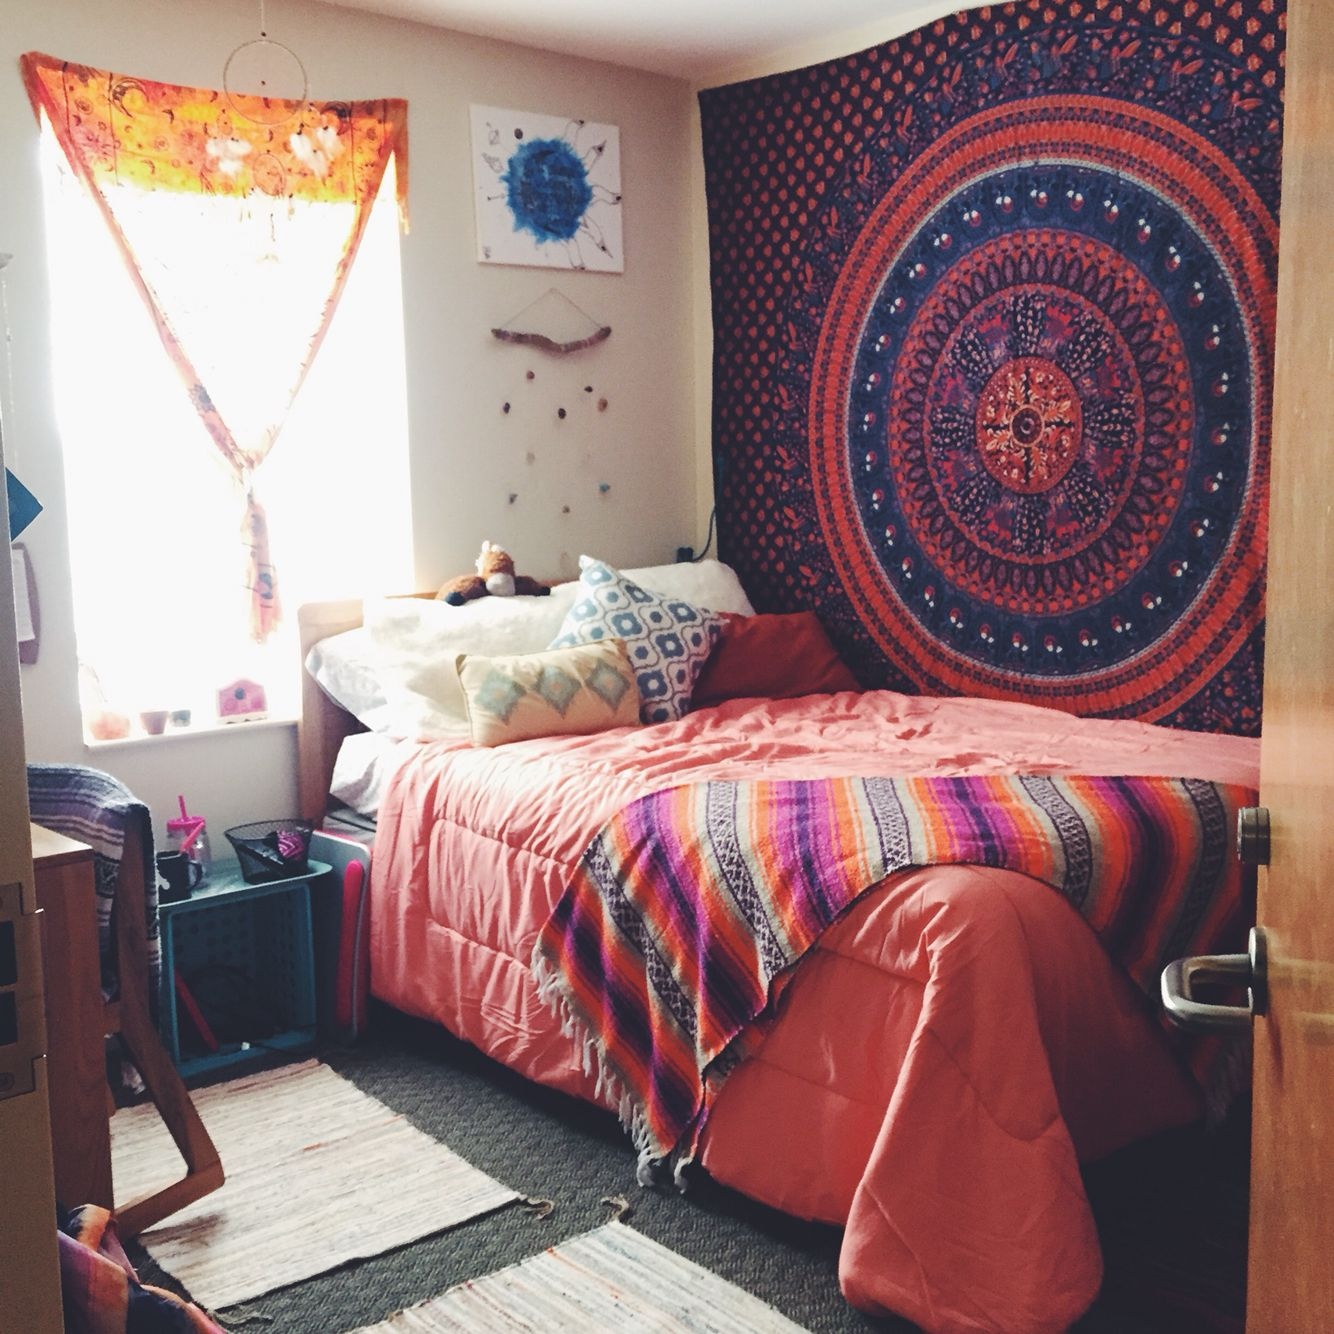 My Dorm At Uncw Comforter From Target Baja Blanket From